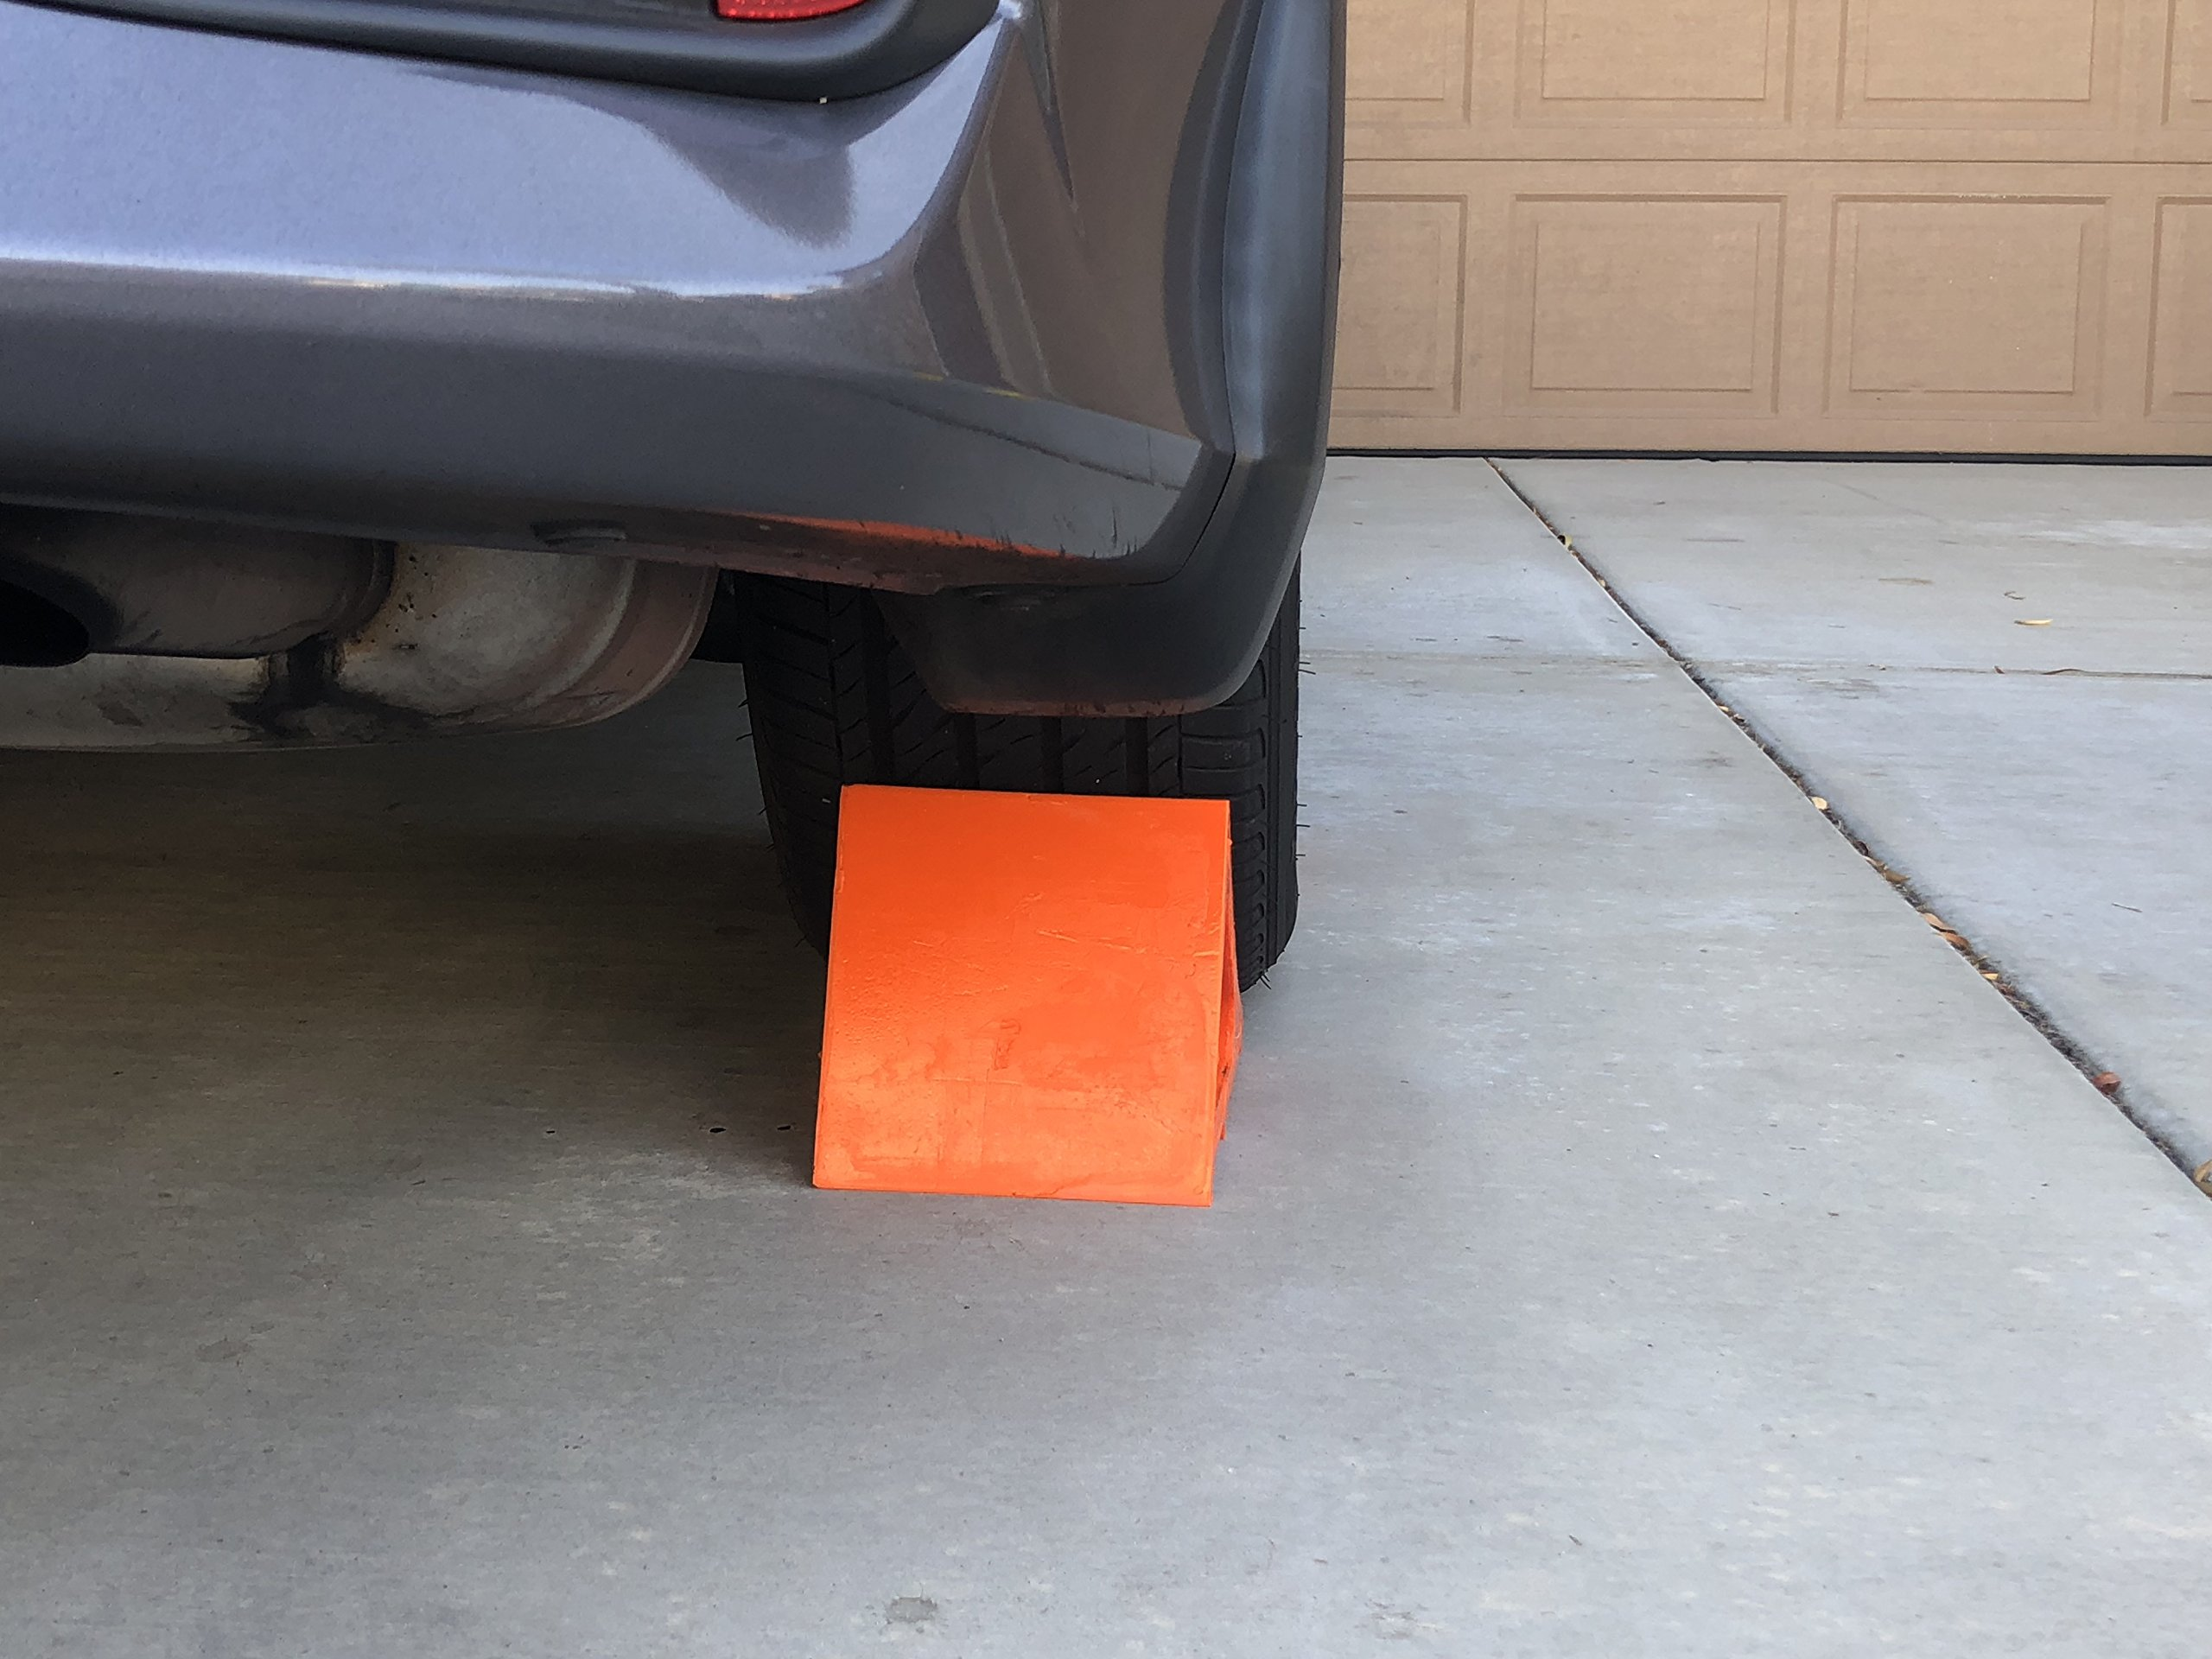 Elasco Wheel Chock, Weatherproof, Outdoor Grade, Polyurethane better than Rubber or Plastic, Keeps Your Trailer or RV In Place, 5 Year Warranty (2 Pack, Orange) by Elasco Products (Image #9)